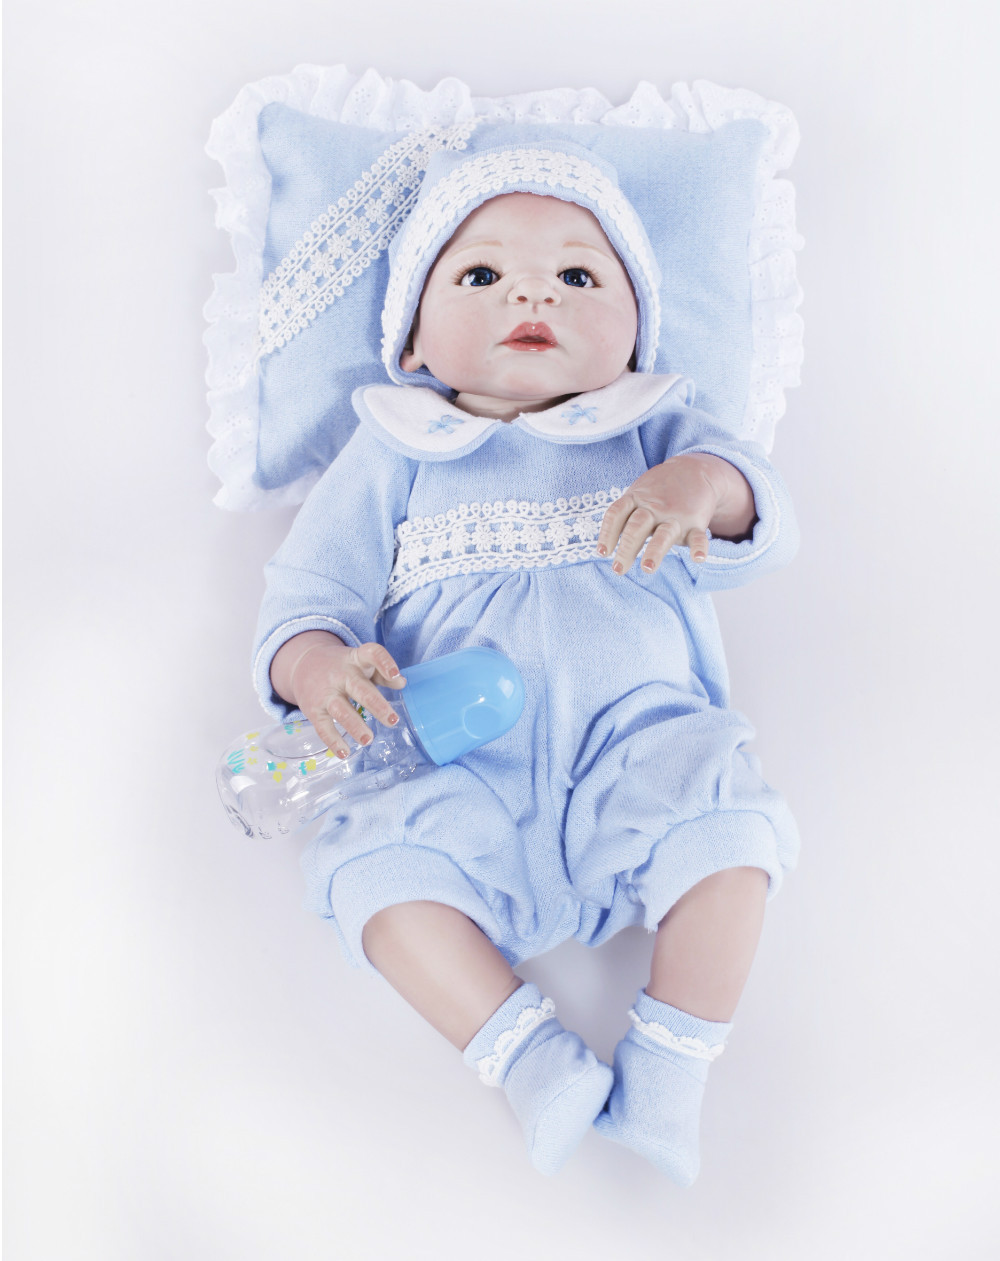 2015 Sales Promotion Full Vinyl Reborn Doll Lifelike Real Touch Babydolls For children Gift2015 Sales Promotion Full Vinyl Reborn Doll Lifelike Real Touch Babydolls For children Gift